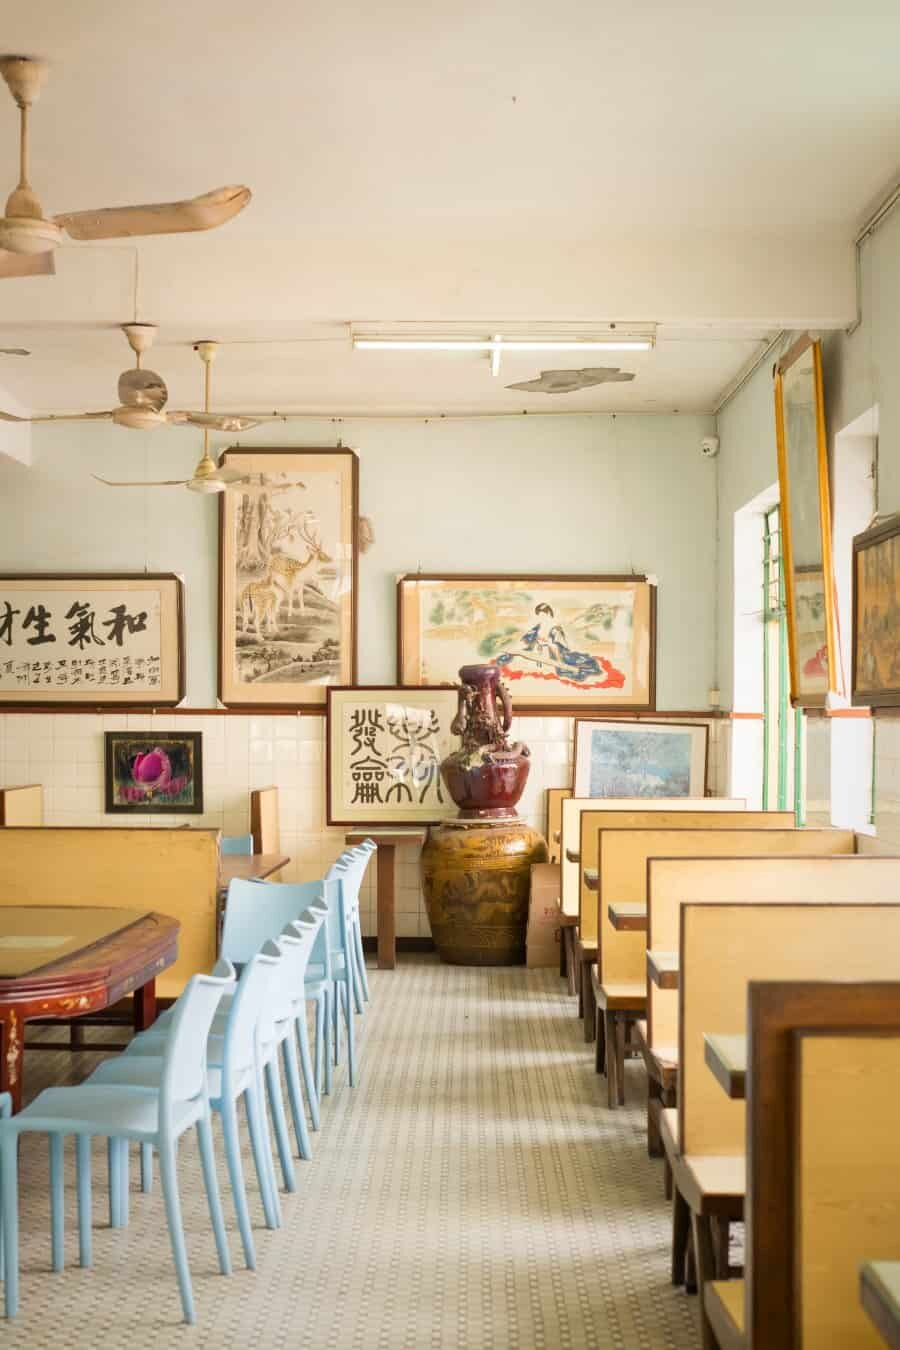 Long wa teahouse Macao - Macao photography and food locations